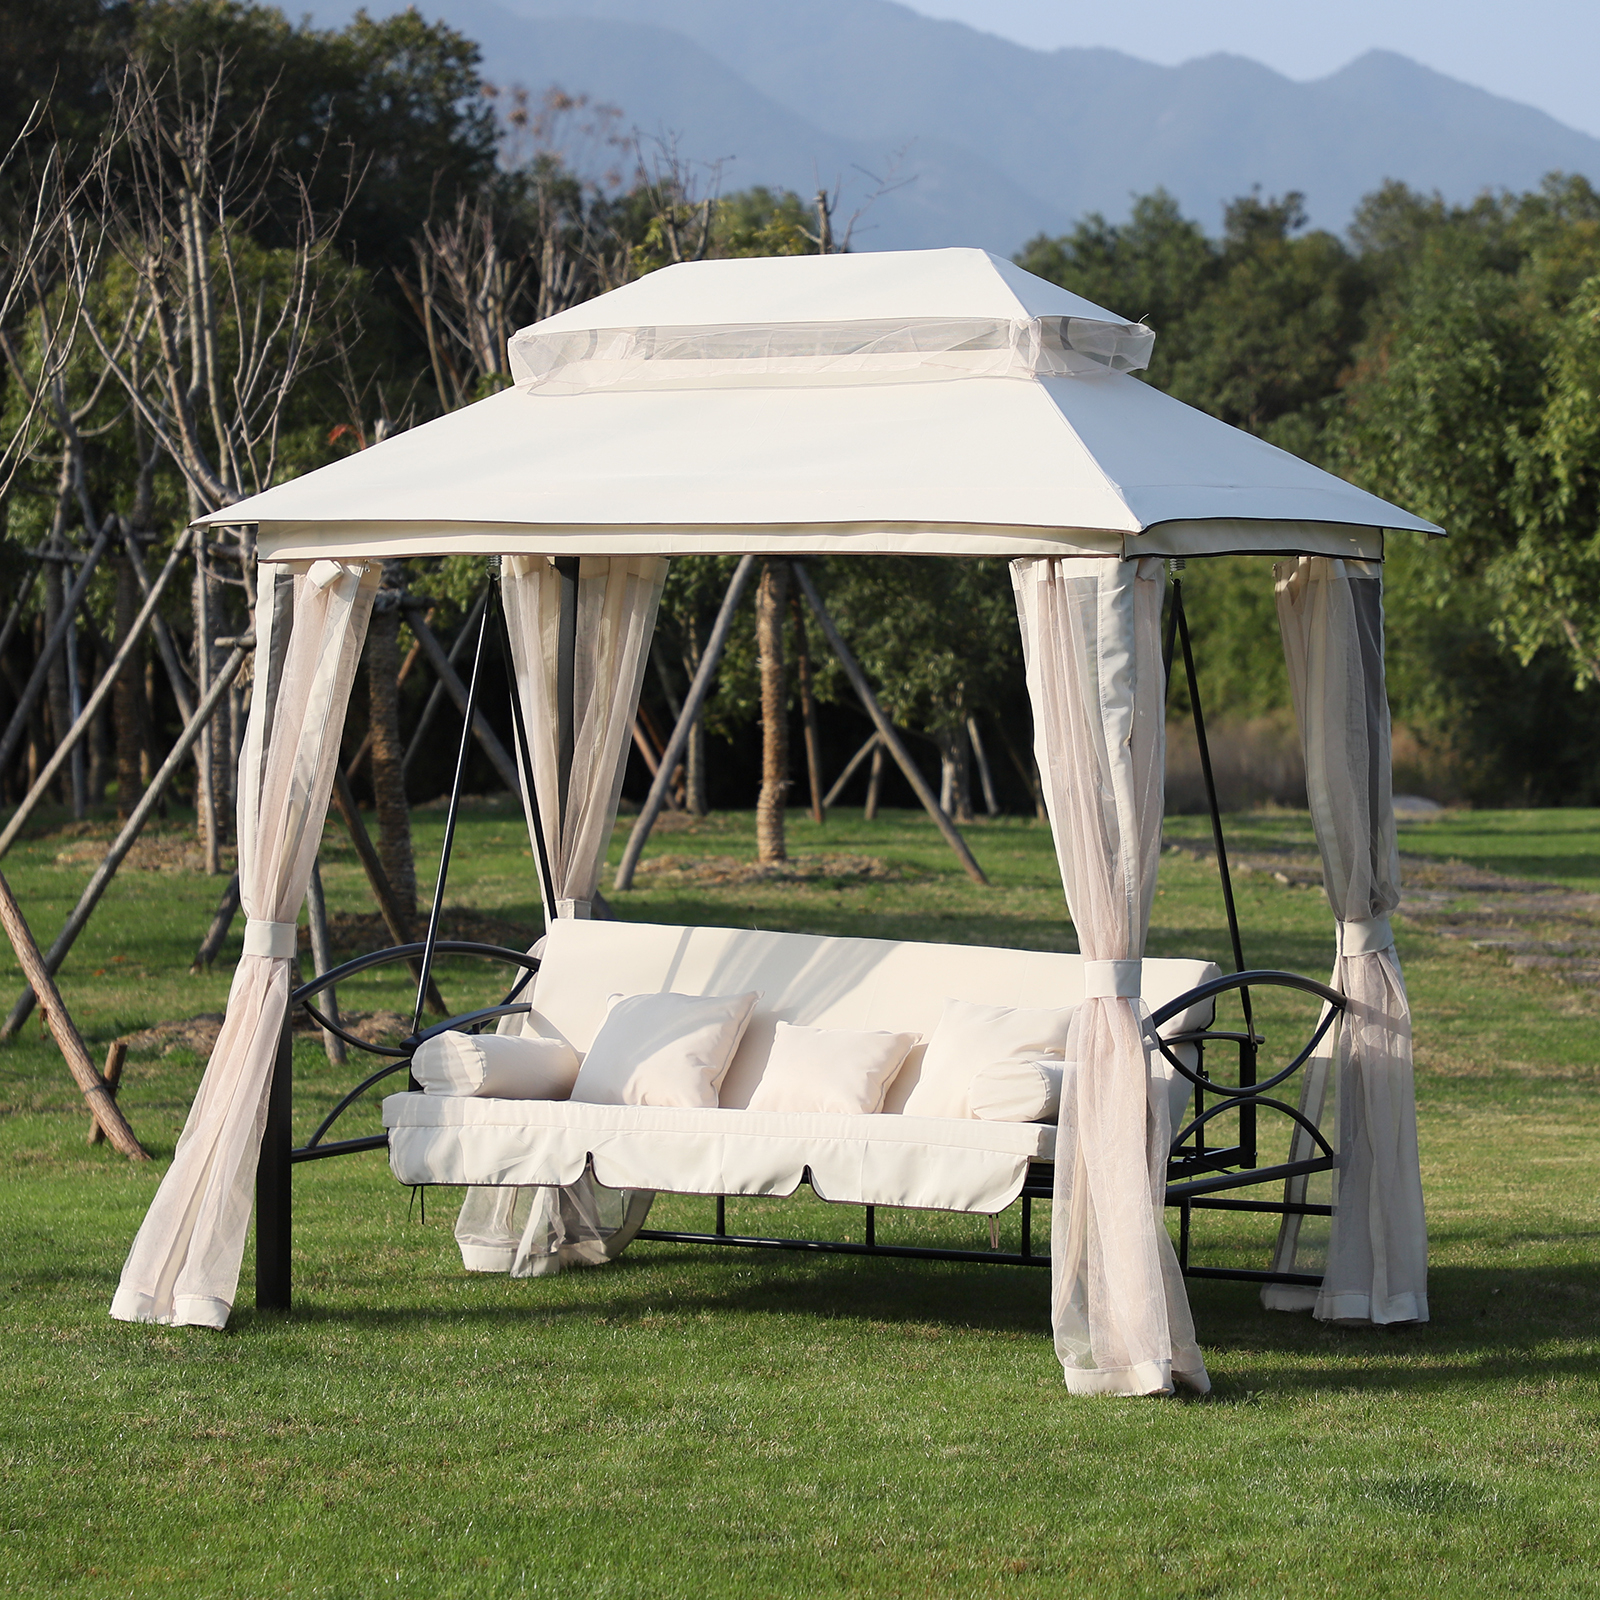 Outsunny Outdoor 2-In-1 Convertible Swing Chair Bed 3 Seater Porch  W/nettings dedans Balancelle Convertible